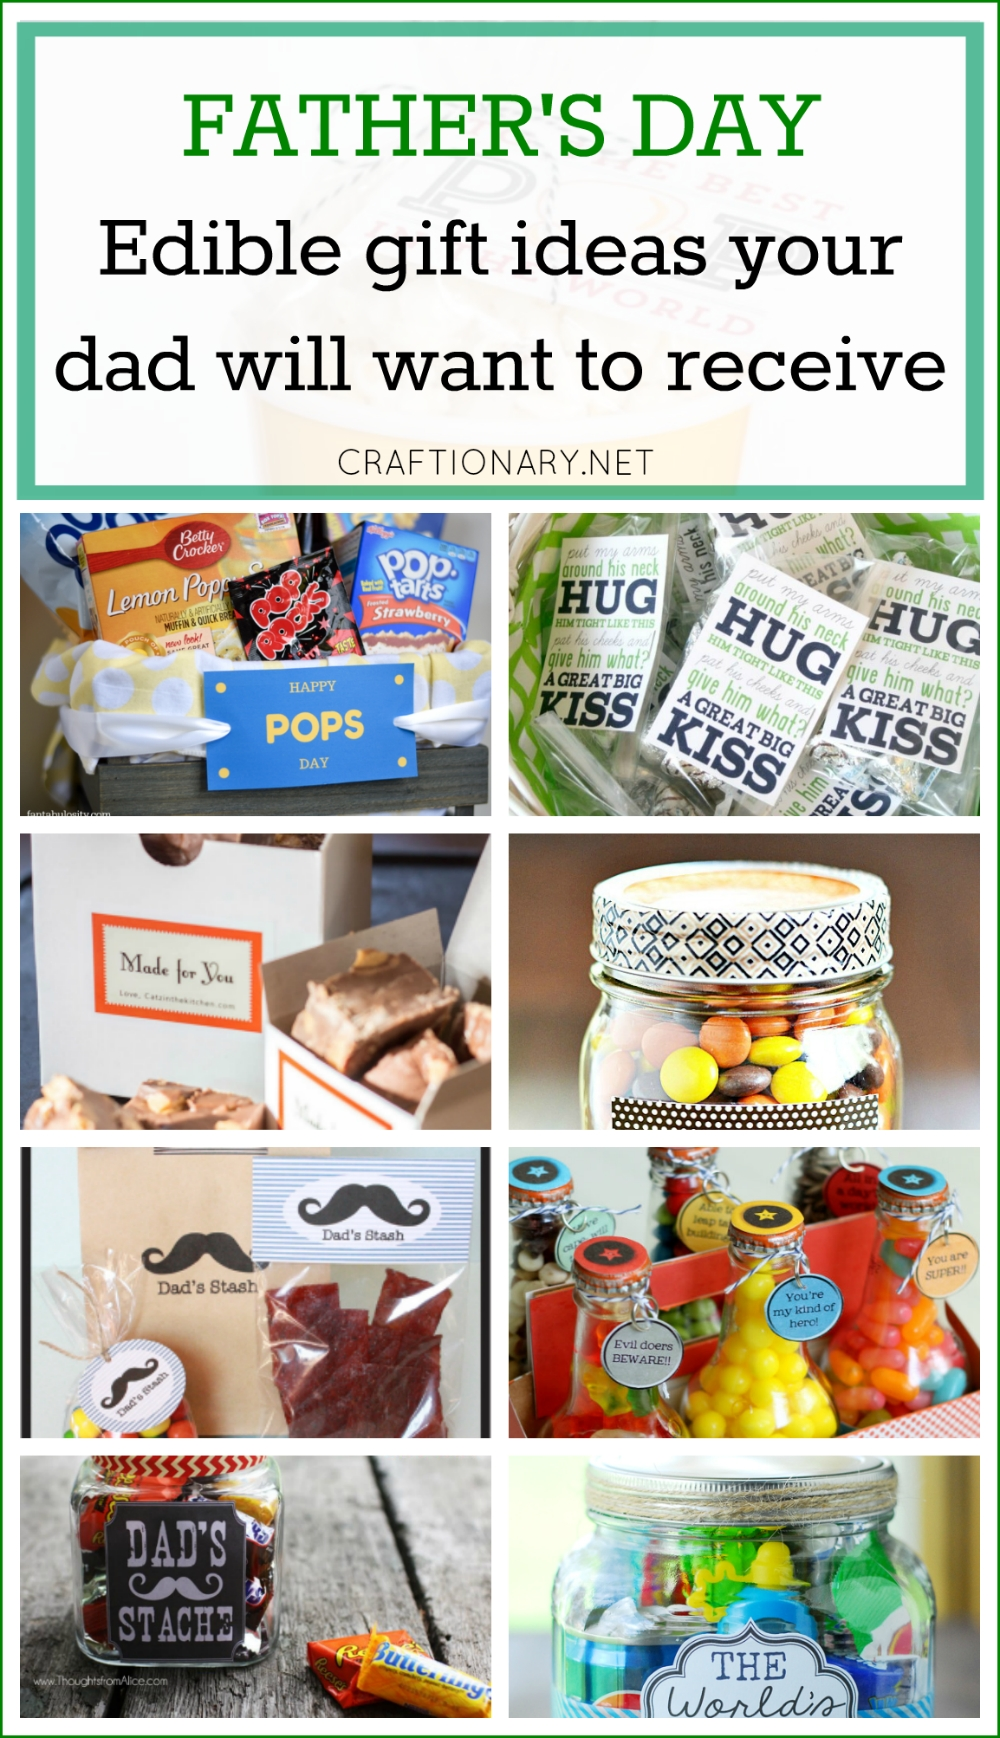 edible-gift-ideas-for-fathers-day